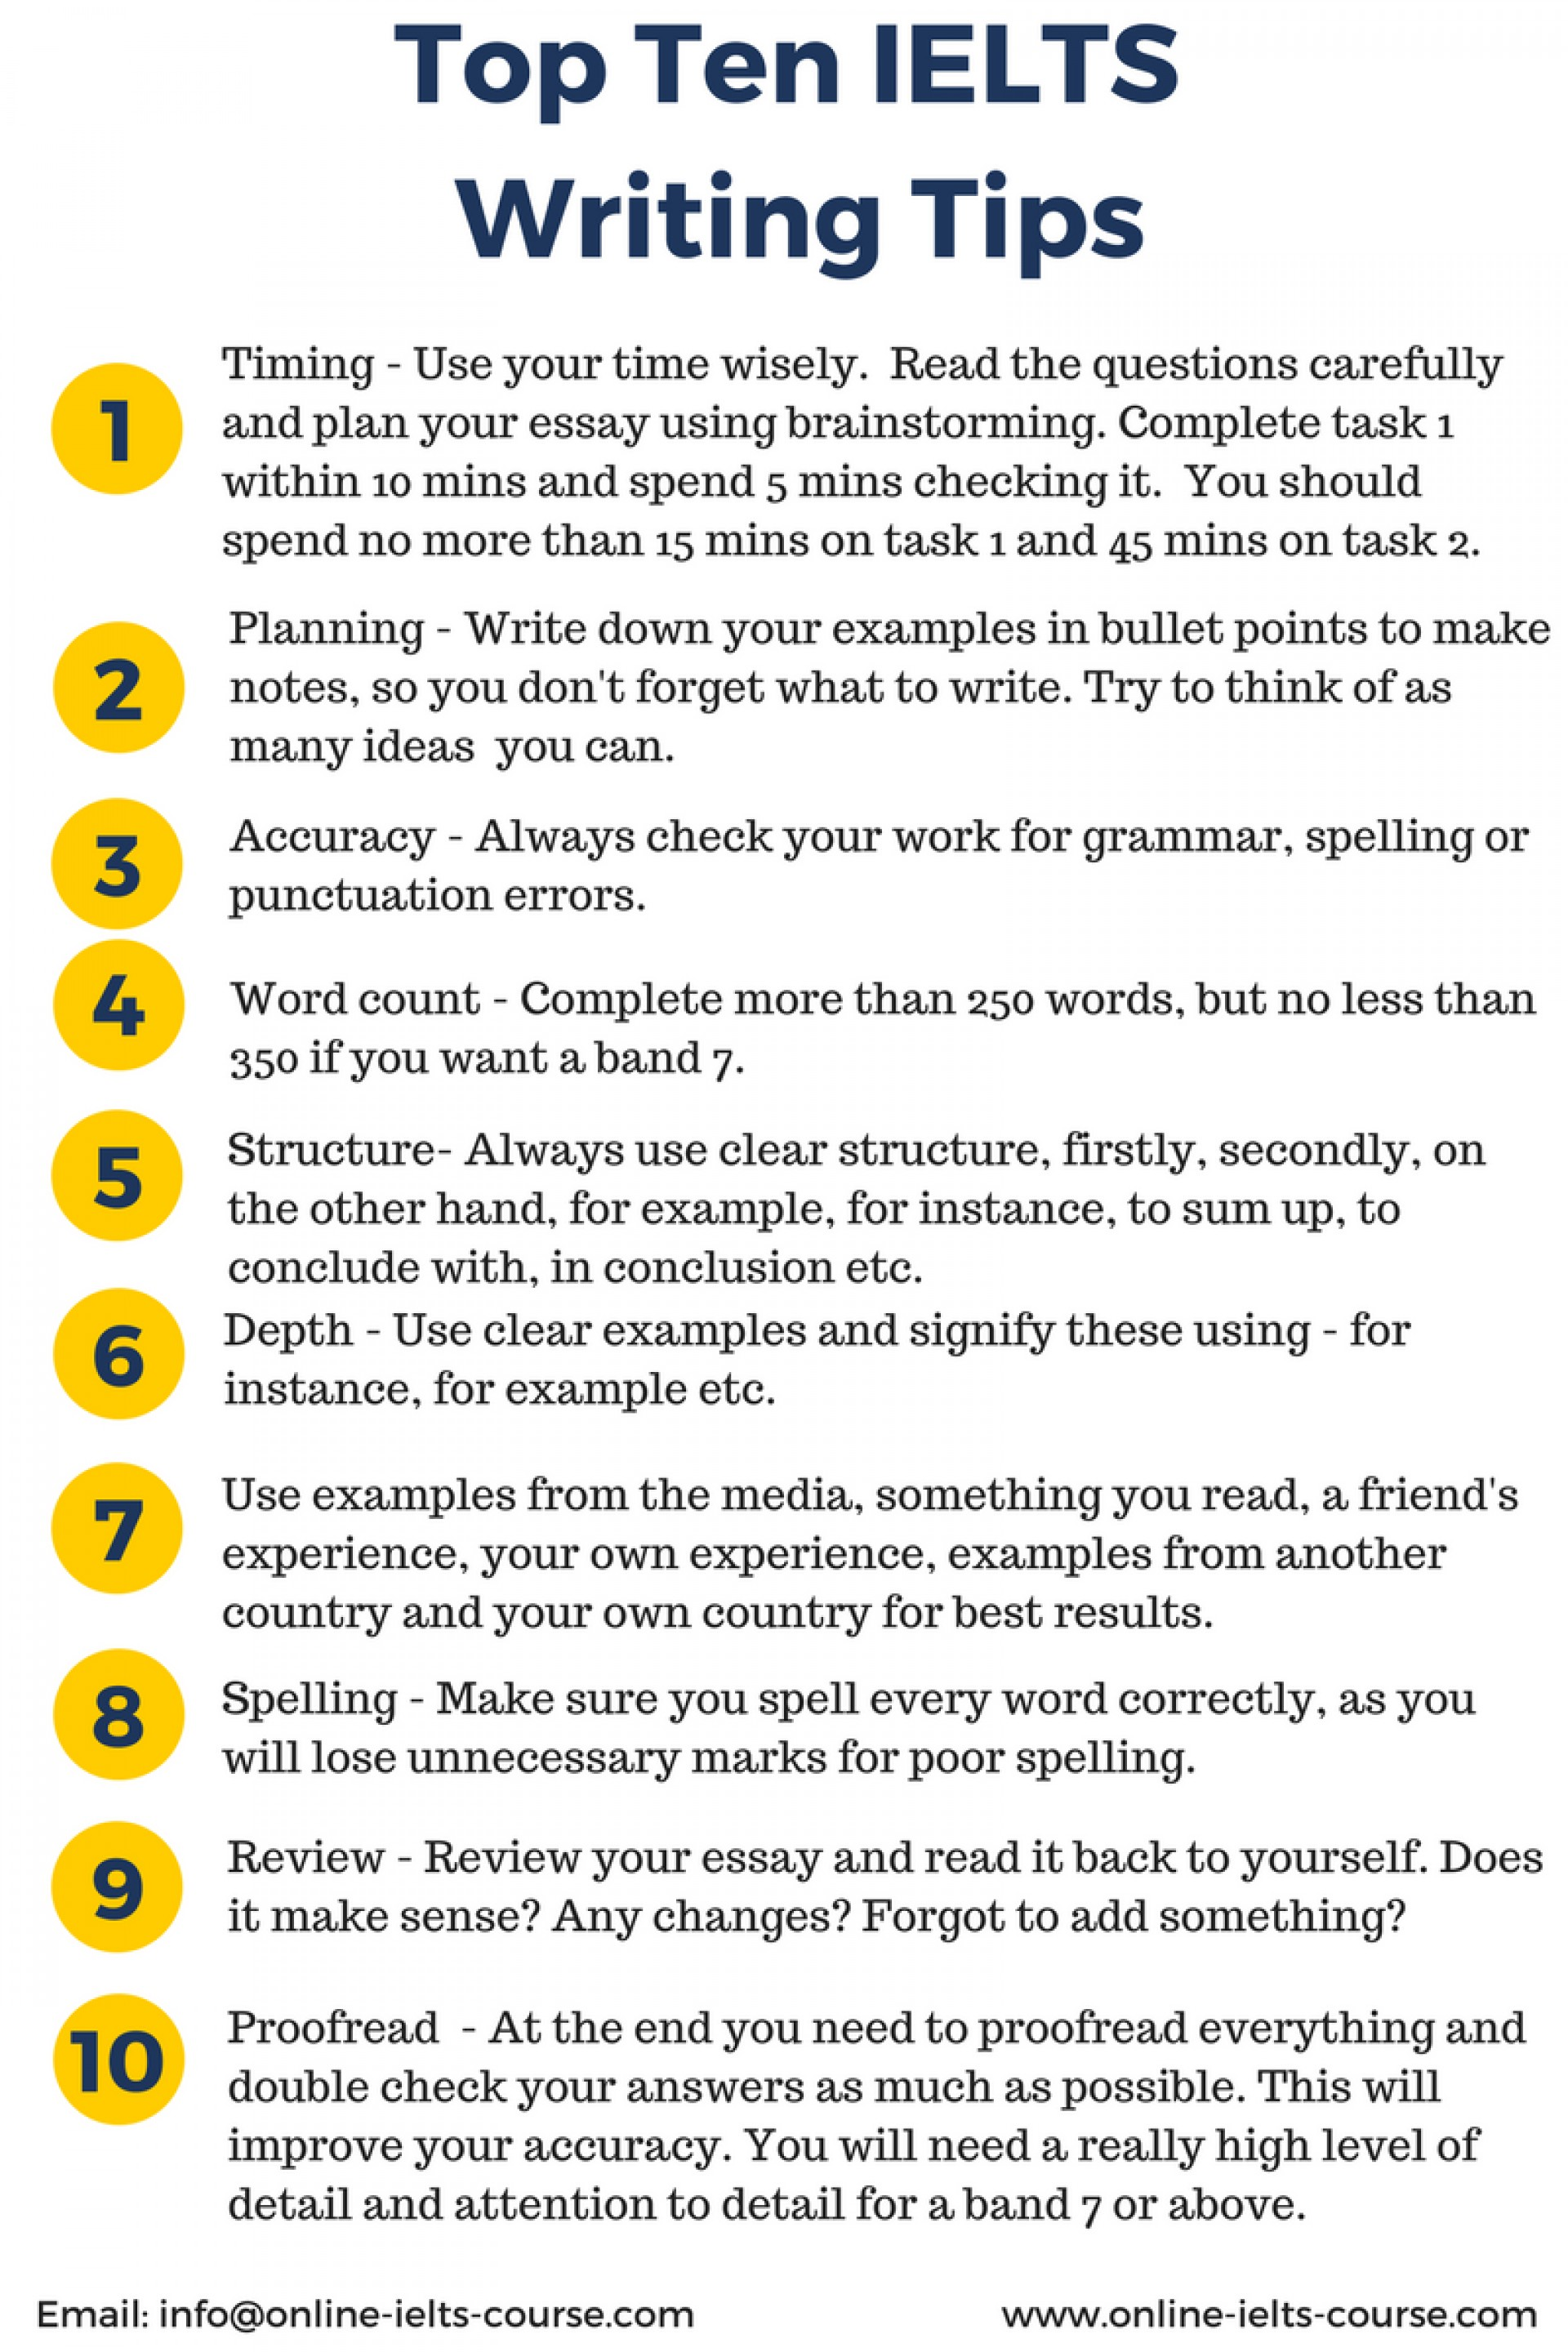 essay example ielts essays for academic writing band samples of    ielts essays for academic essay questions top ten writing tips  online course free c bacfafbcabcbdedb